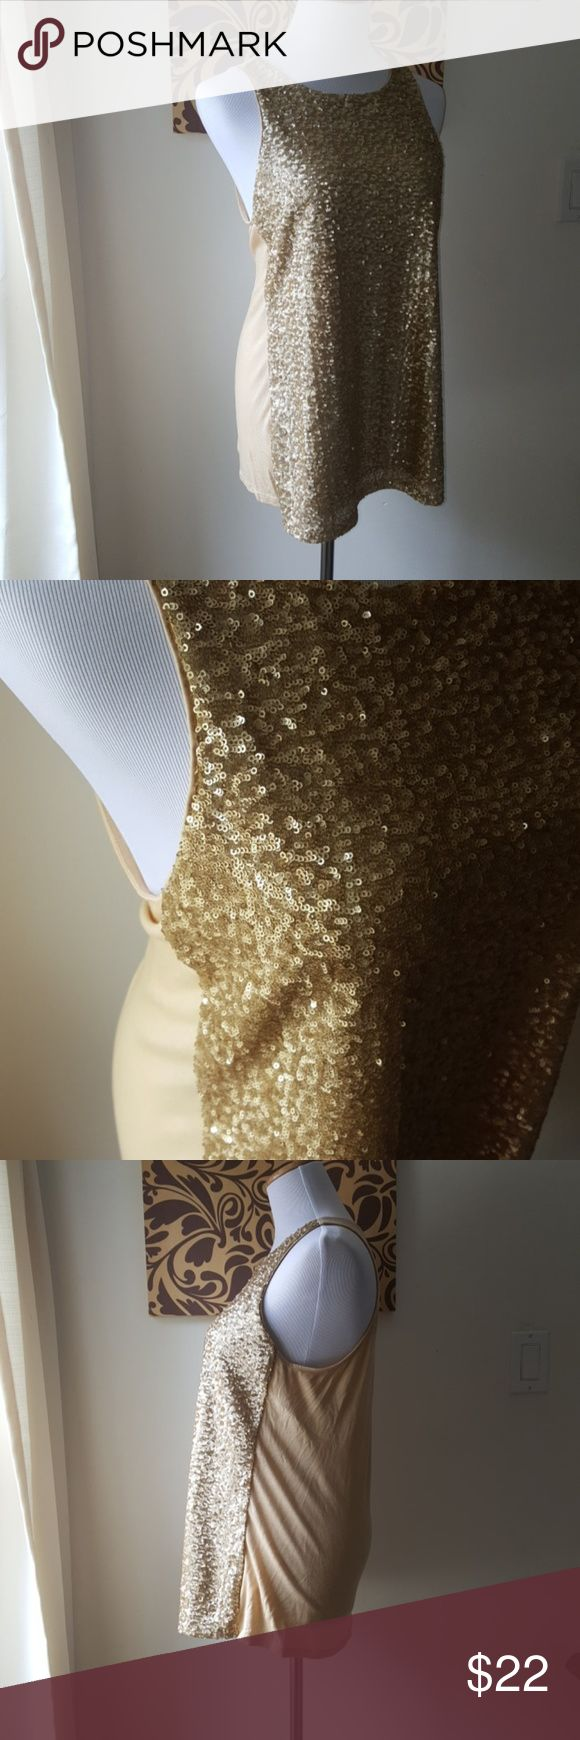 Express Gold Sequin Tank Good used condition. Gold Sequin front. The front has two layers. The bottom is a satin layer with the sequin over laying. The are not attached at bottom of short as shown in photo above. The back of shirt is a cotton blend. Great top to layer with a cardigan.  Bust: 19 inches  Length: 27.5 inches Express Tops Tank Tops